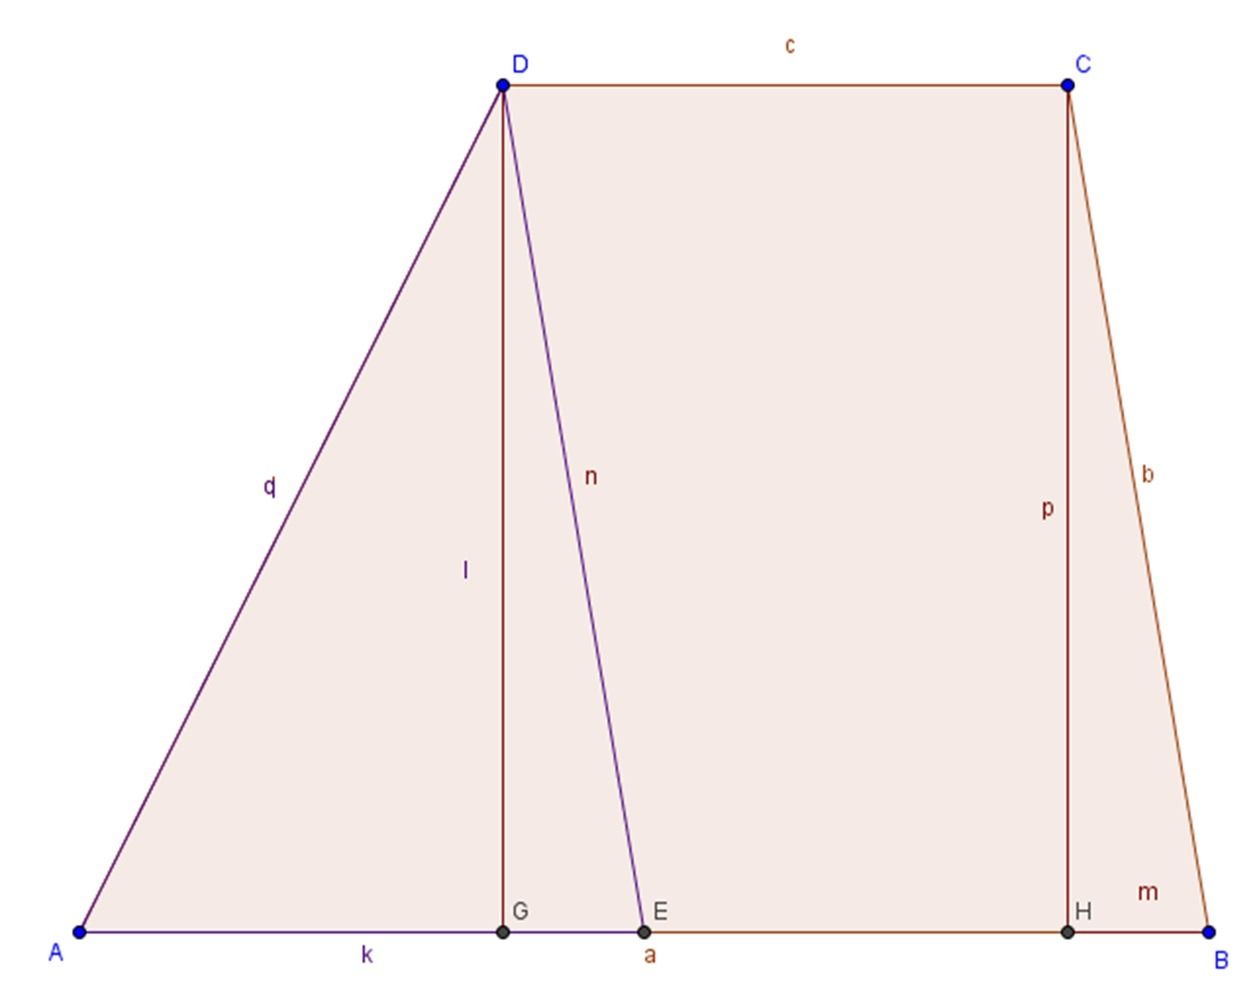 When Altitude Of Triangle Is Equal To Altitude Of